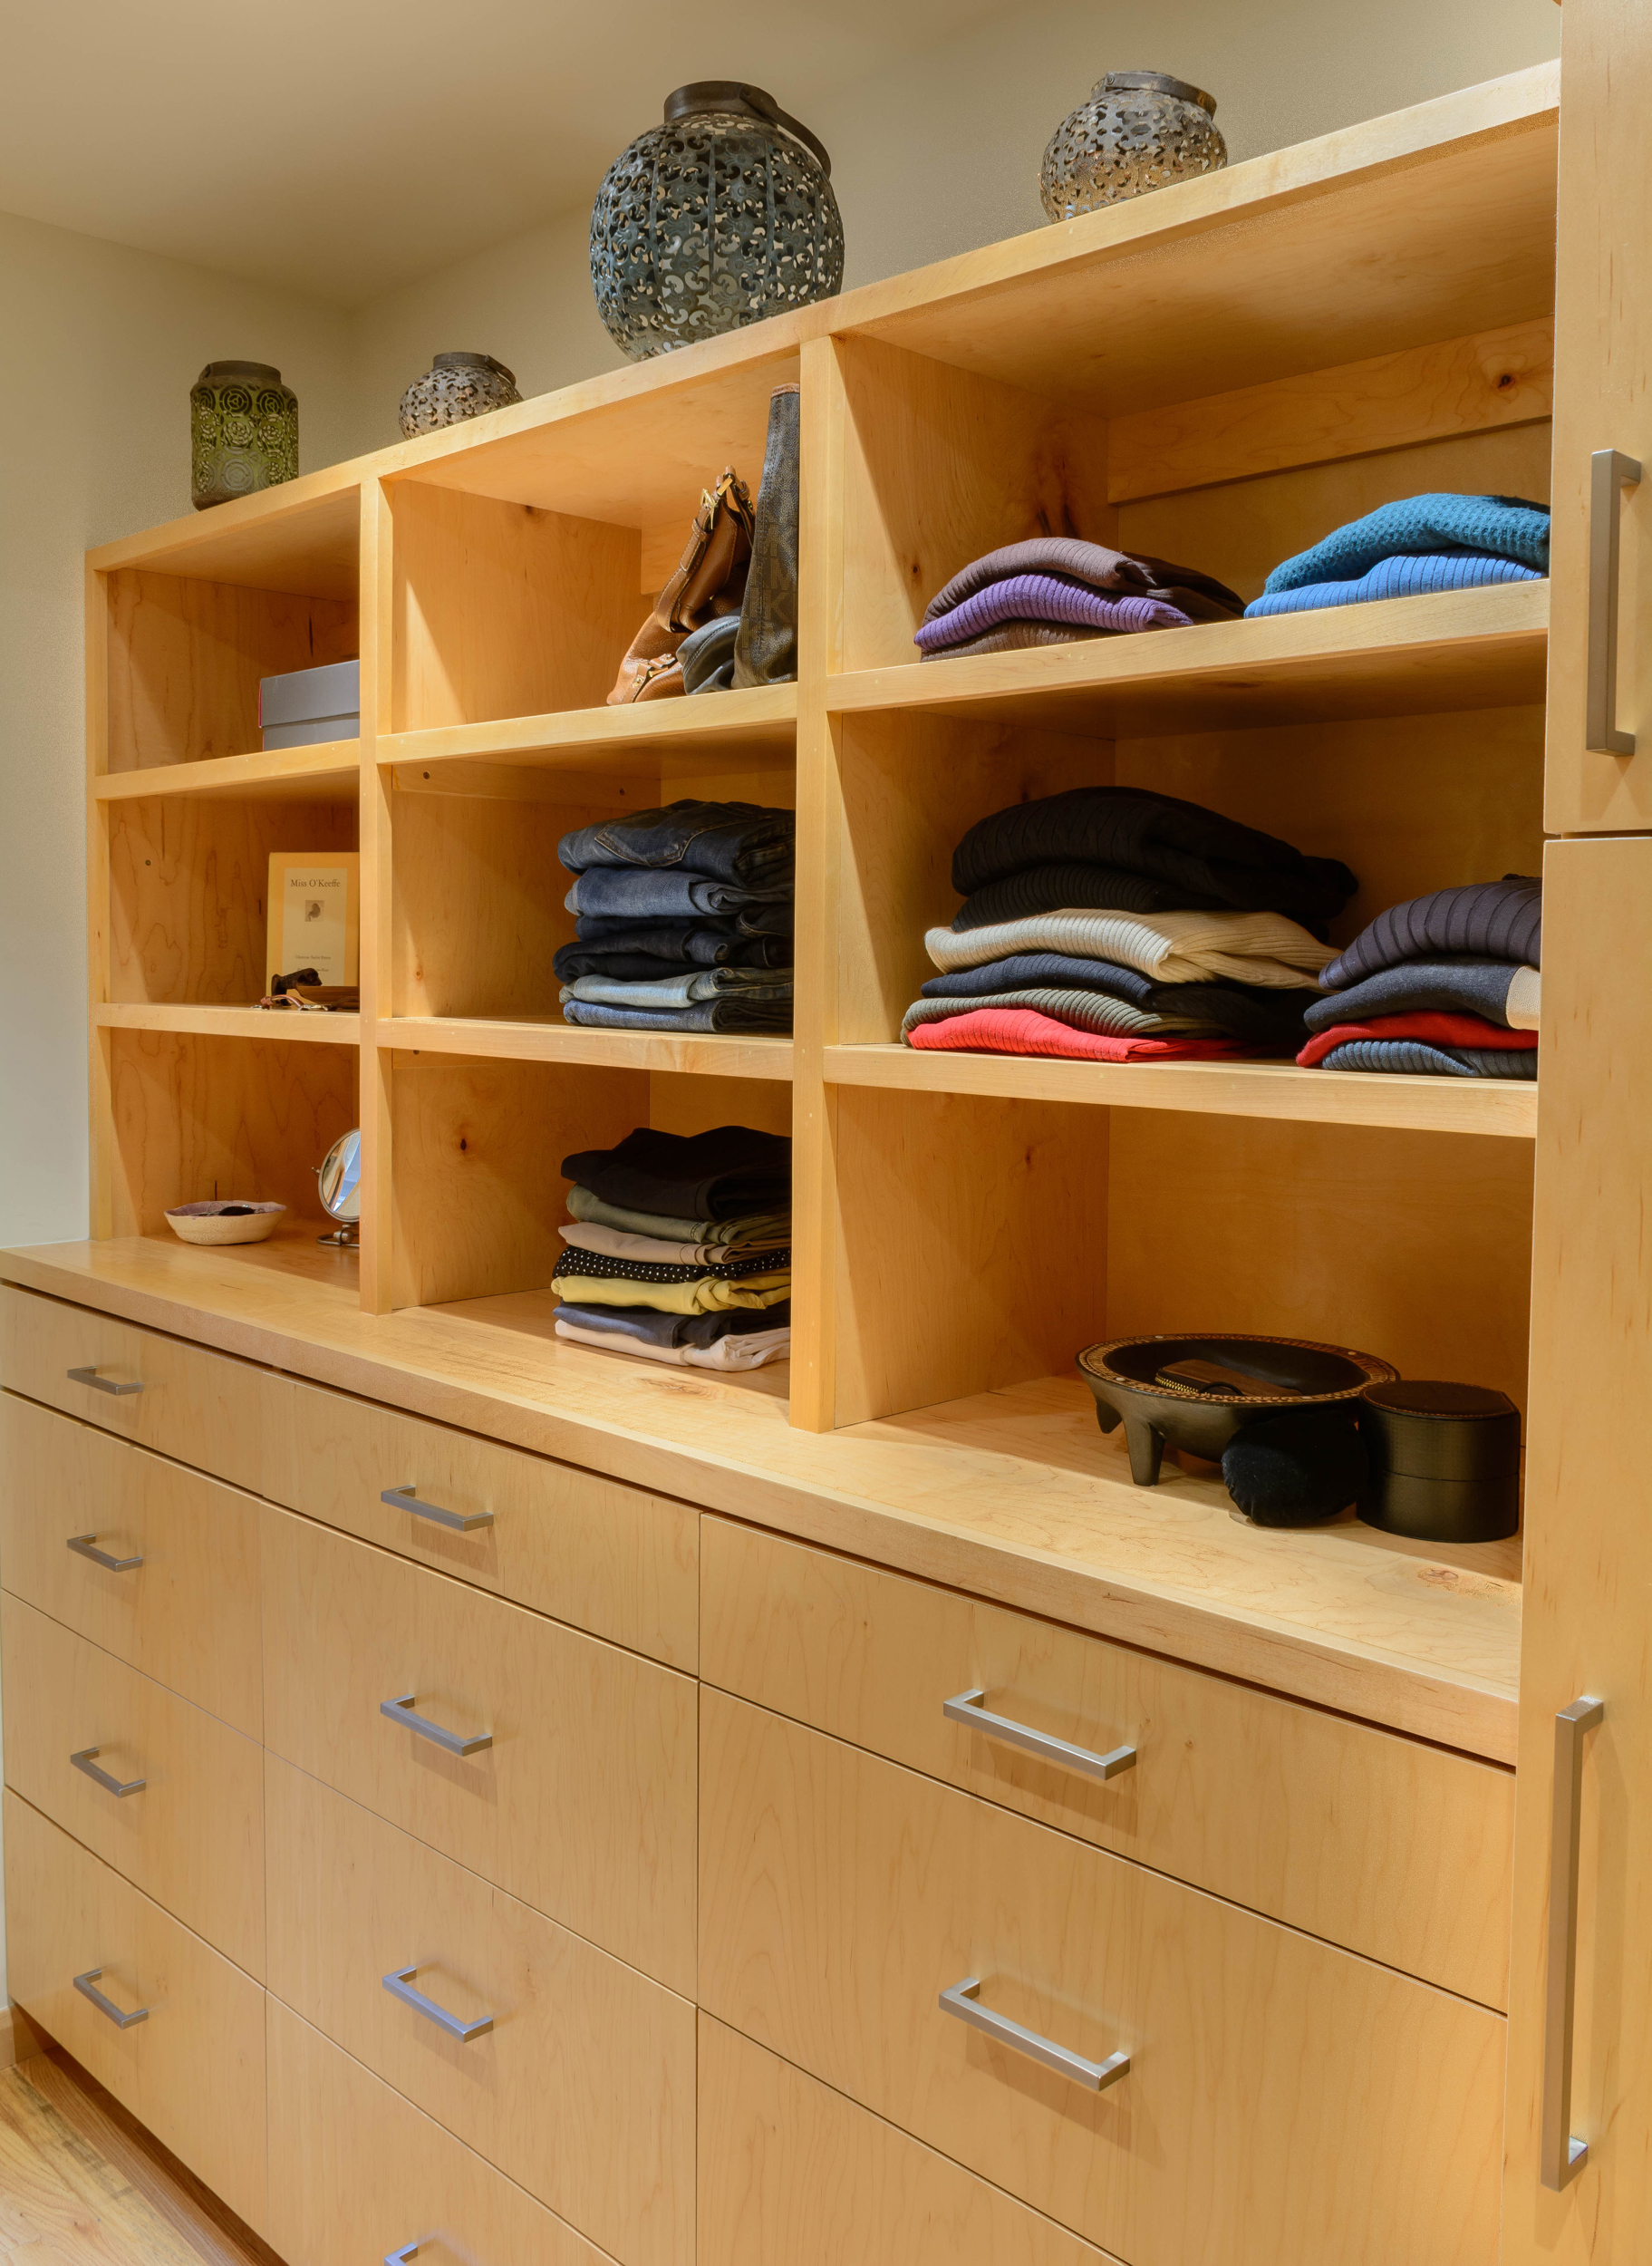 Fingered maple cabinets with drawers and open shelving in this master closet